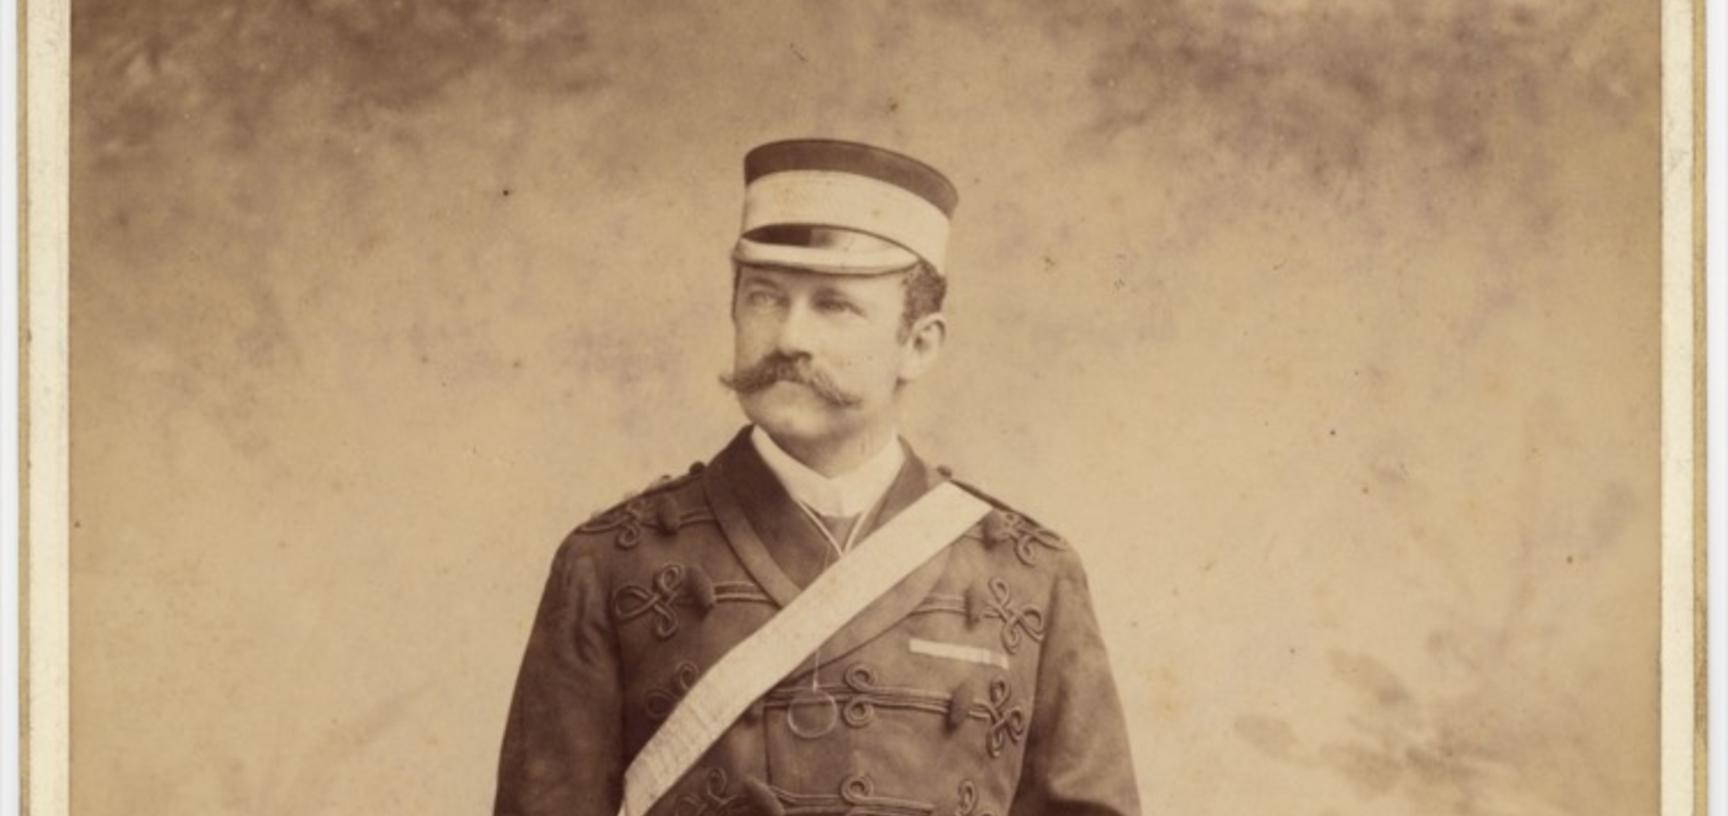 Cabinet card portrait of Colonel Robert Gosset Woodthorpe. Photograph by the P. A. Johnston and Theodore Julius Hoffmann studio. (Calcutta). Calcutta, Bengal (now in West Bengal), India. Circa 1891.